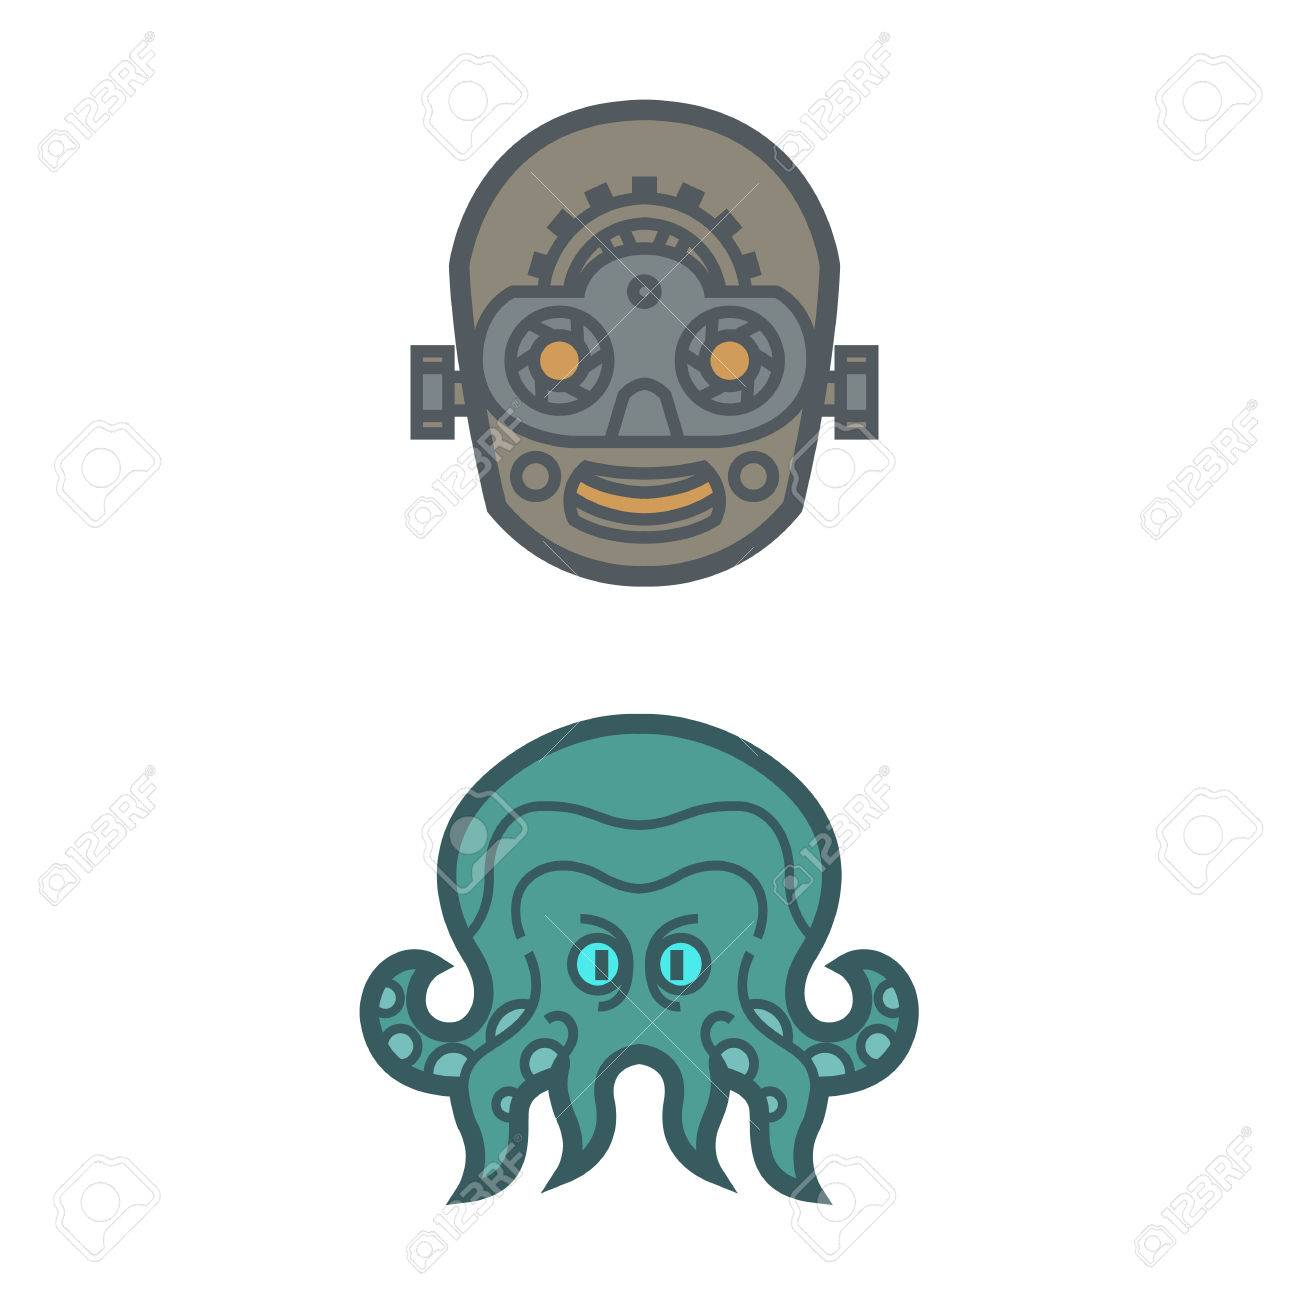 octopus Cthulhu mythical monster tentacle artificial intelligence